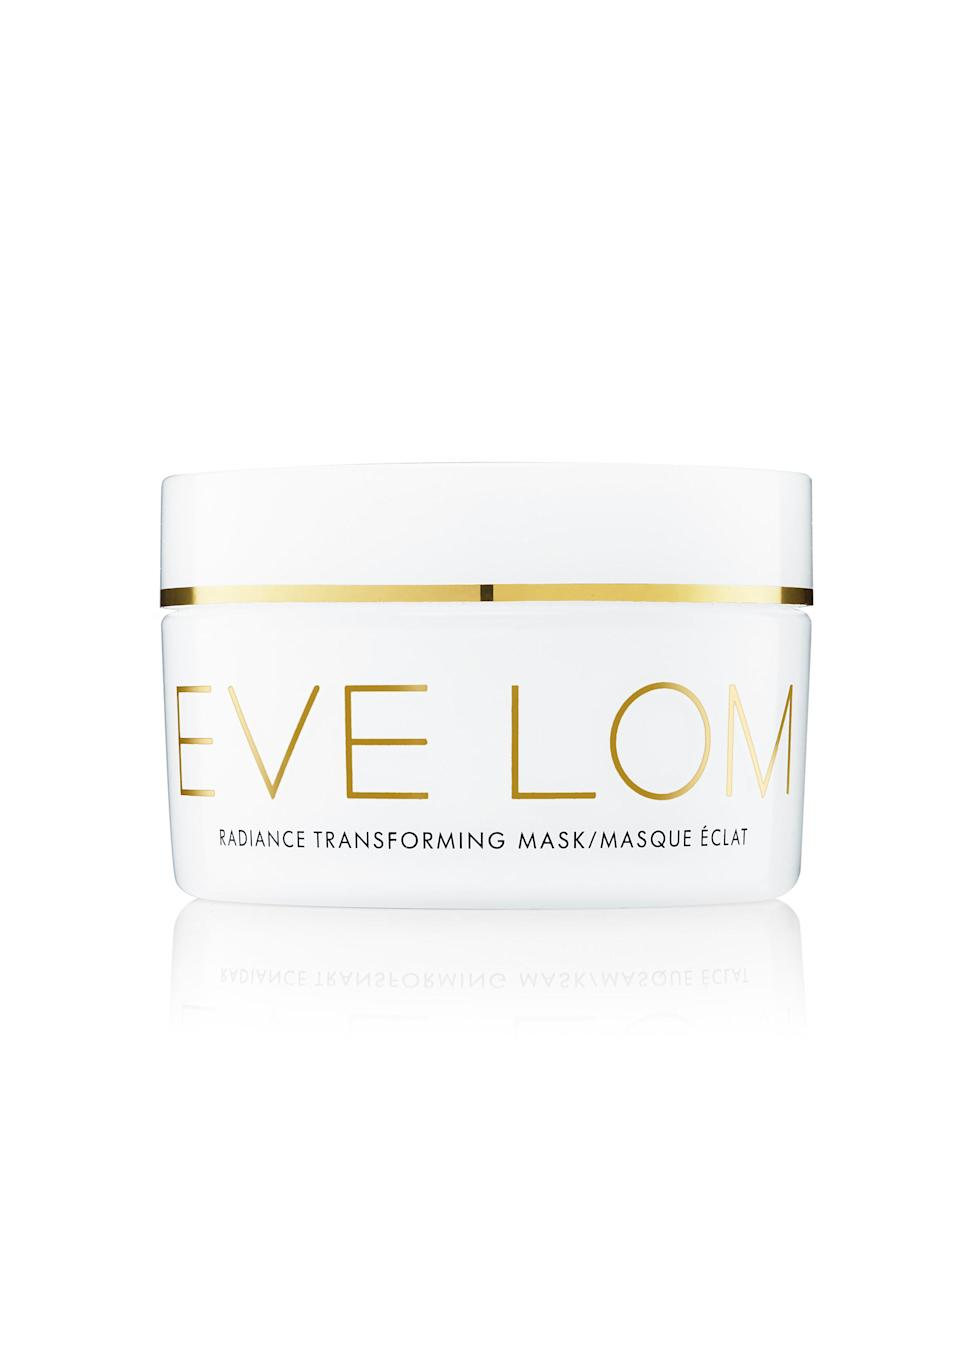 <p>New from EVE LOM, this semi-solid mask is just what your skin needs at the end of a long week. Enriched with a Lime Pearl Caviar formula, it gently exfoliates dirt and grime leaving a glowing complexion. For an intense treatment, you can leave the mask on overnight and give your skin a much-needed hydration boost. </p>